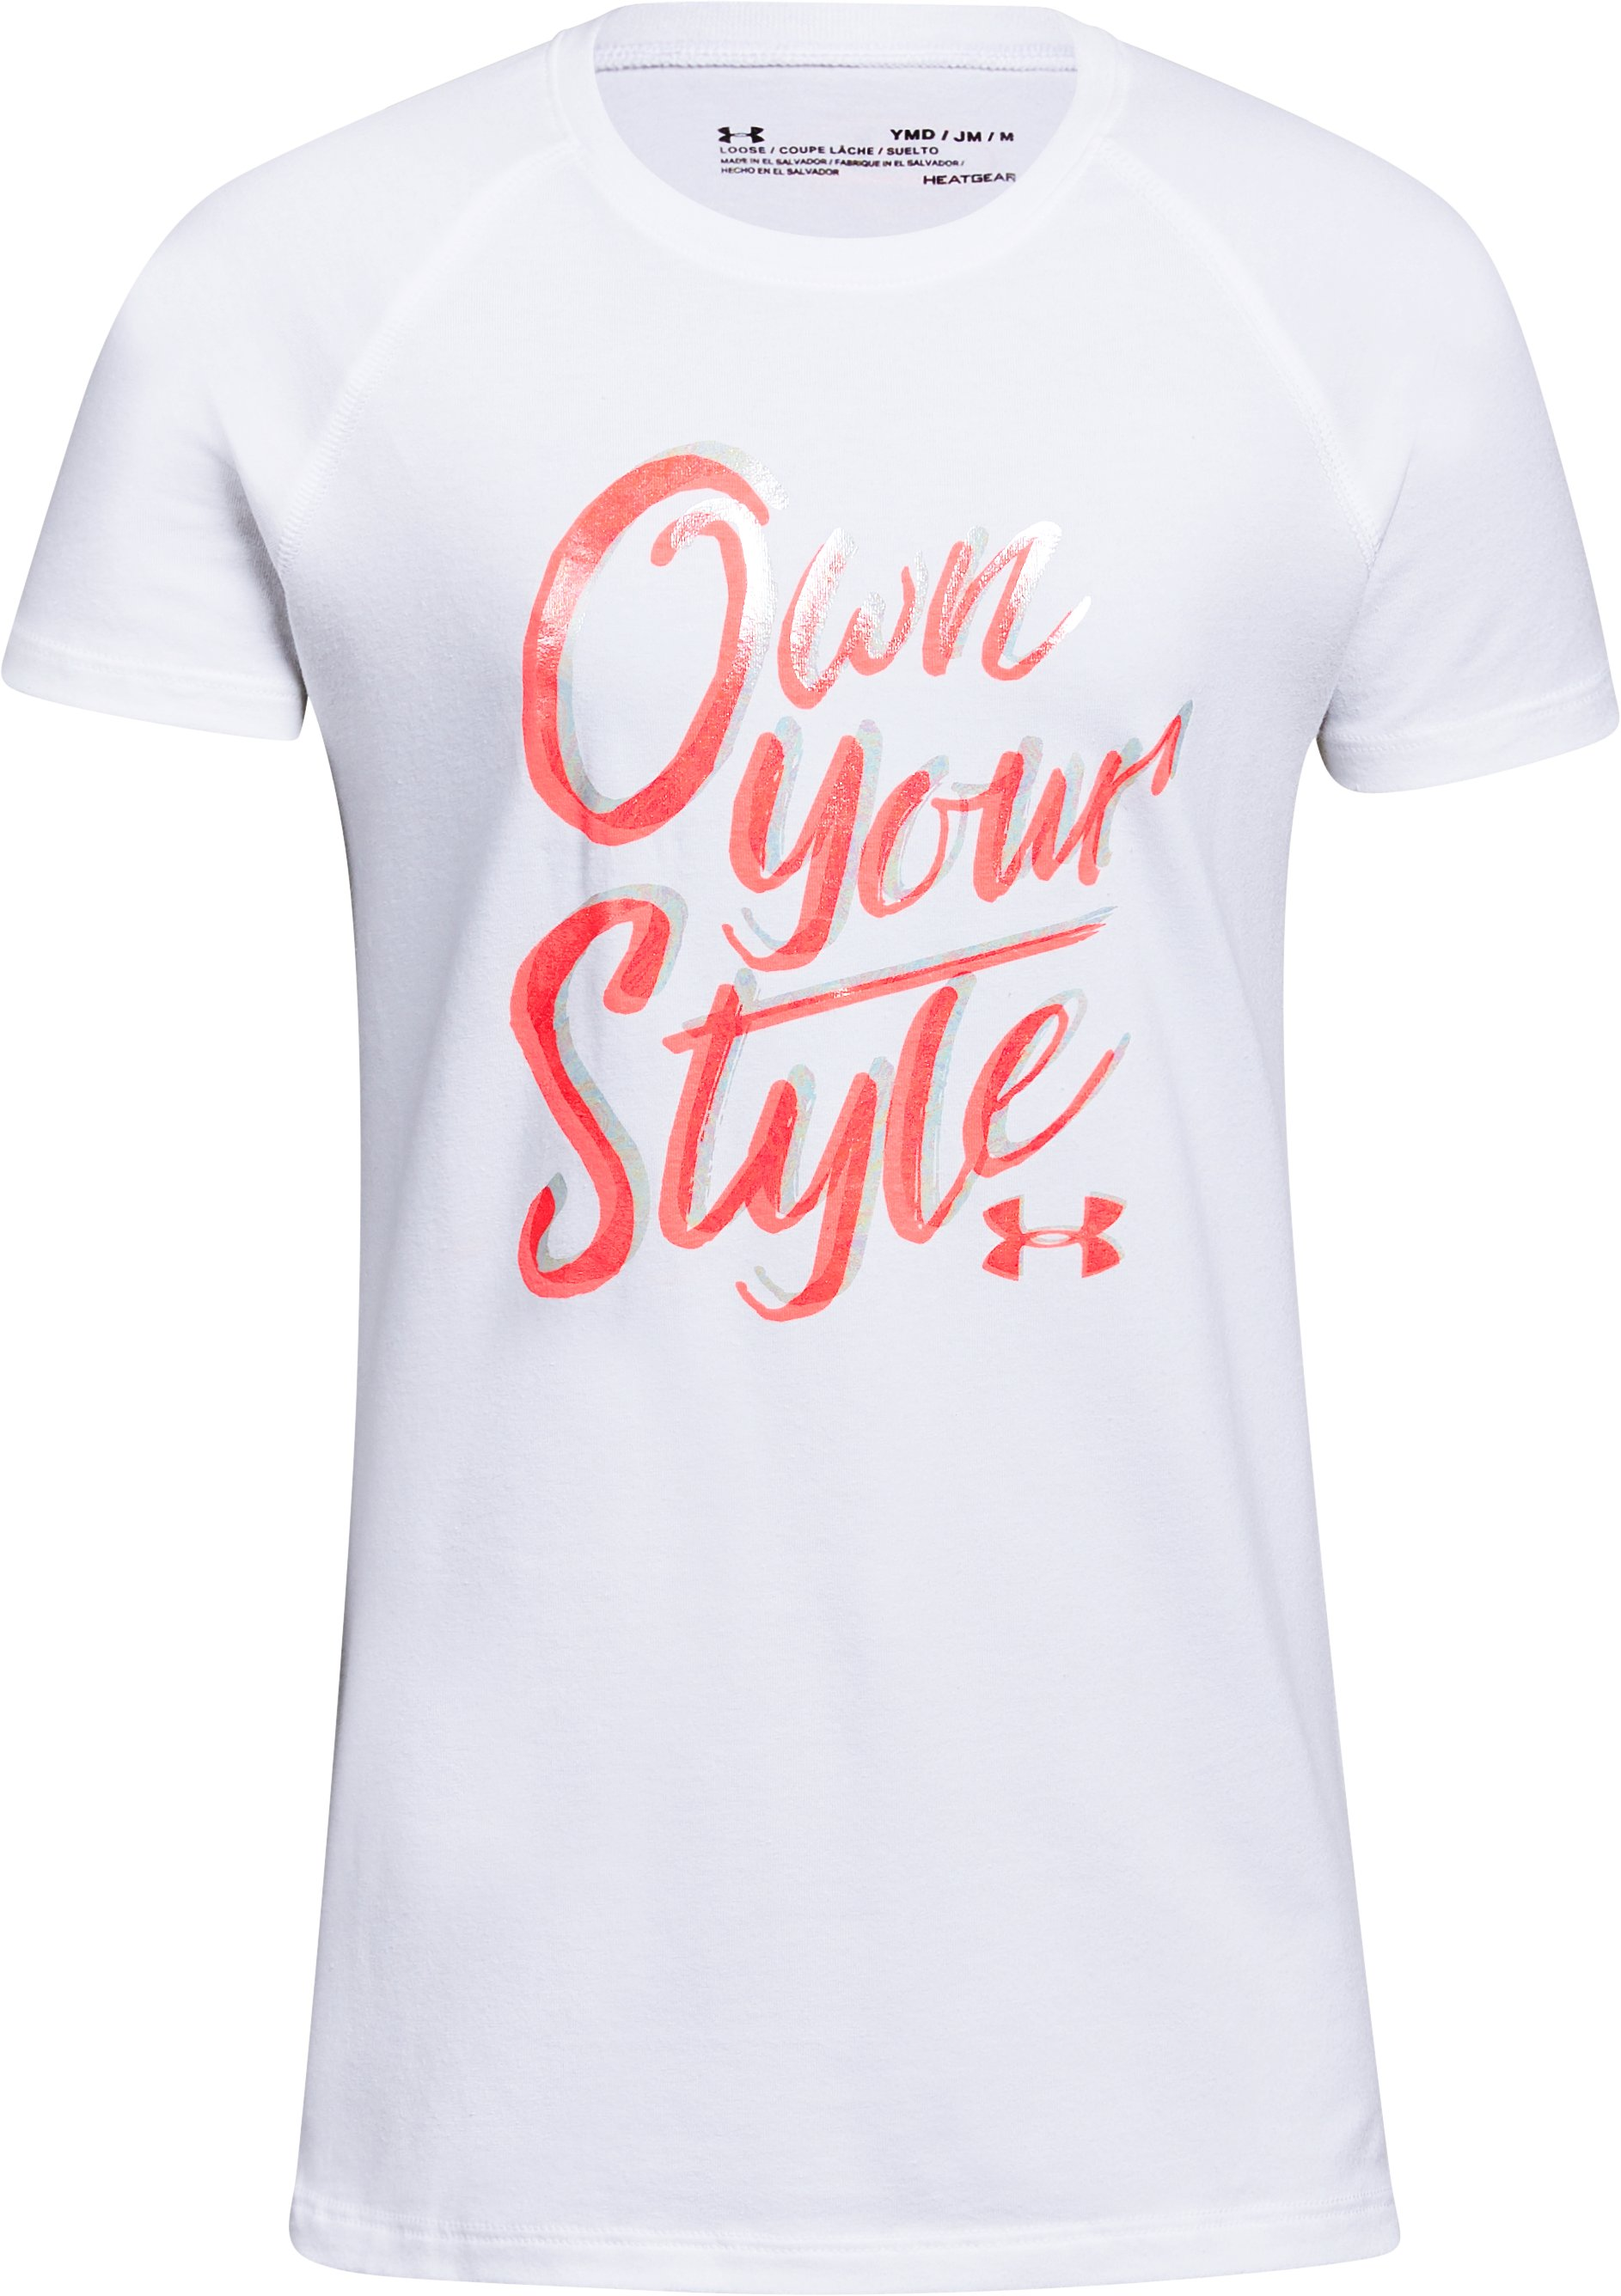 Girls' UA Own Your Style T-Shirt, White, undefined